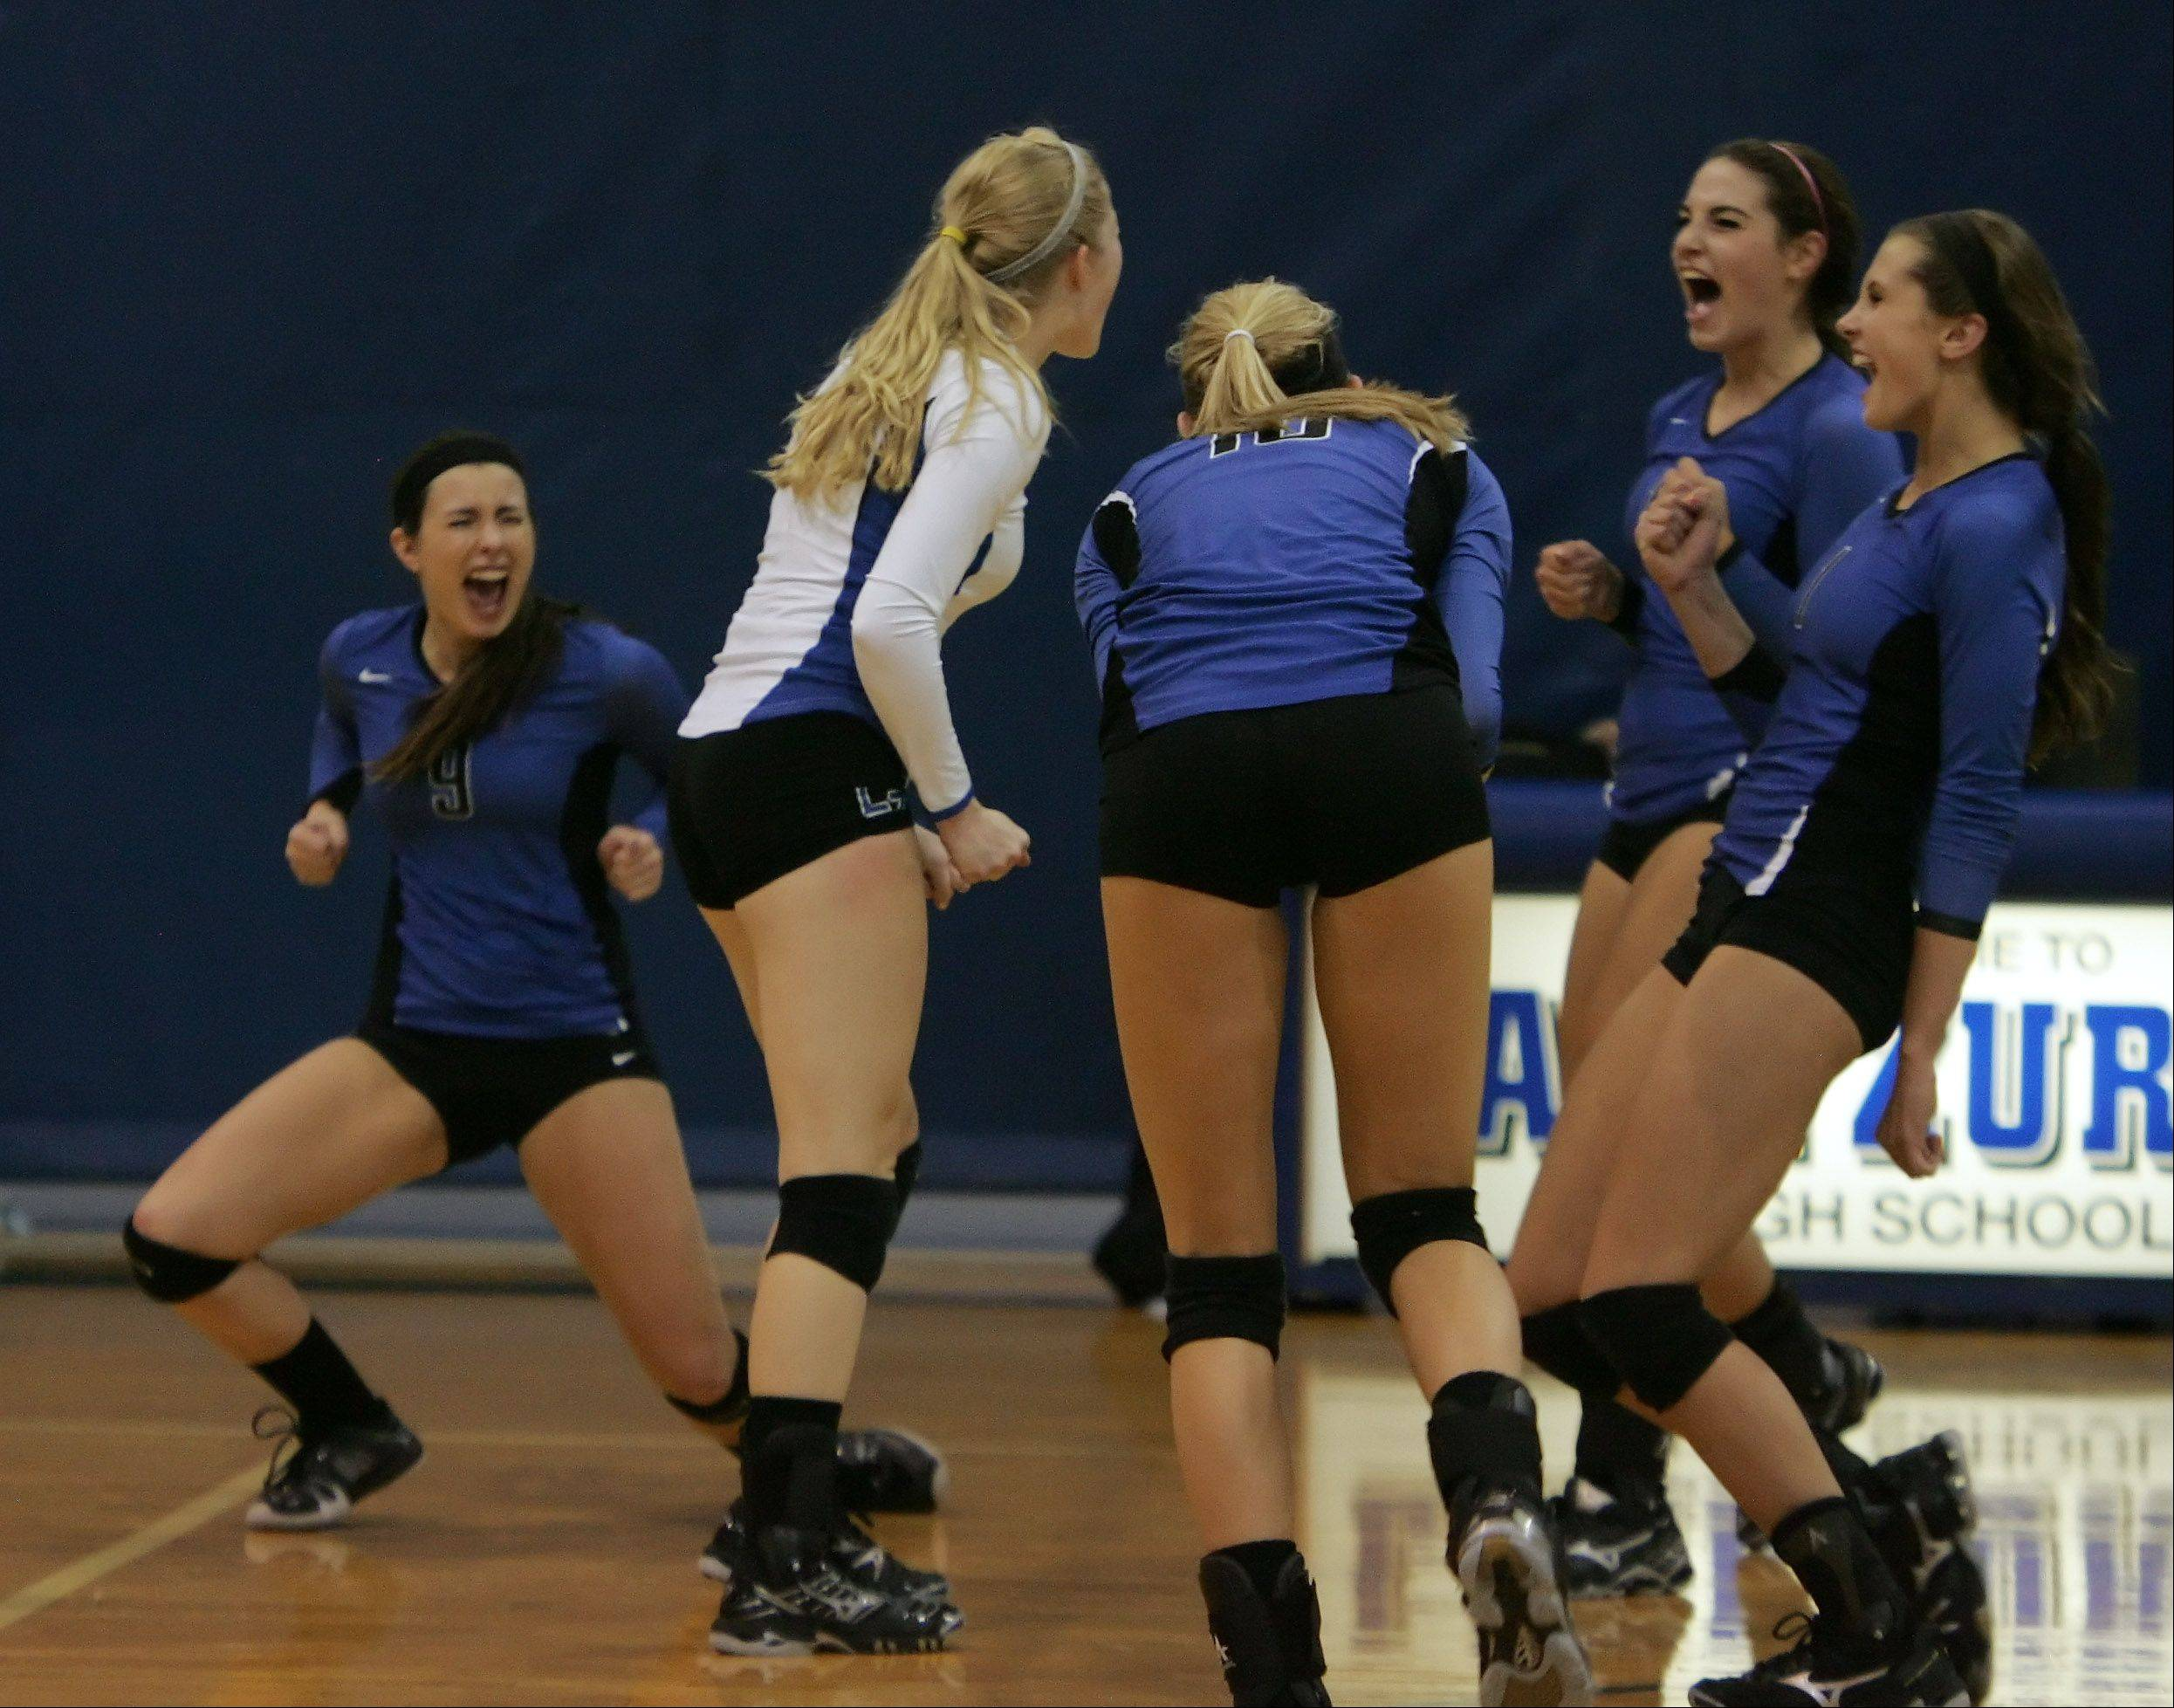 Lake Zurich players celebrate after winning the first game against visiting Prairie Ridge on Tuesday.